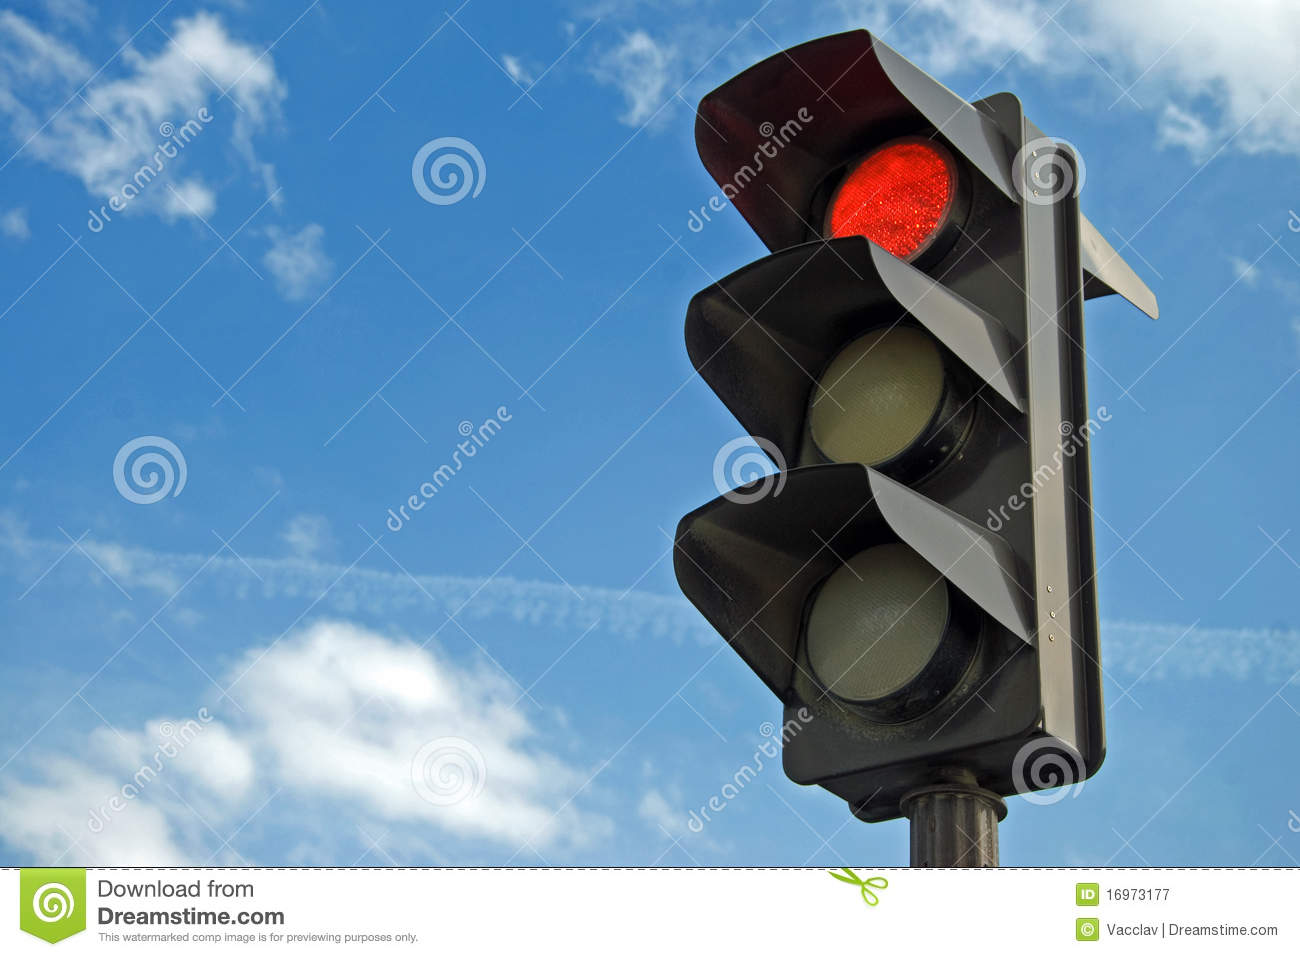 Red color on the traffic light